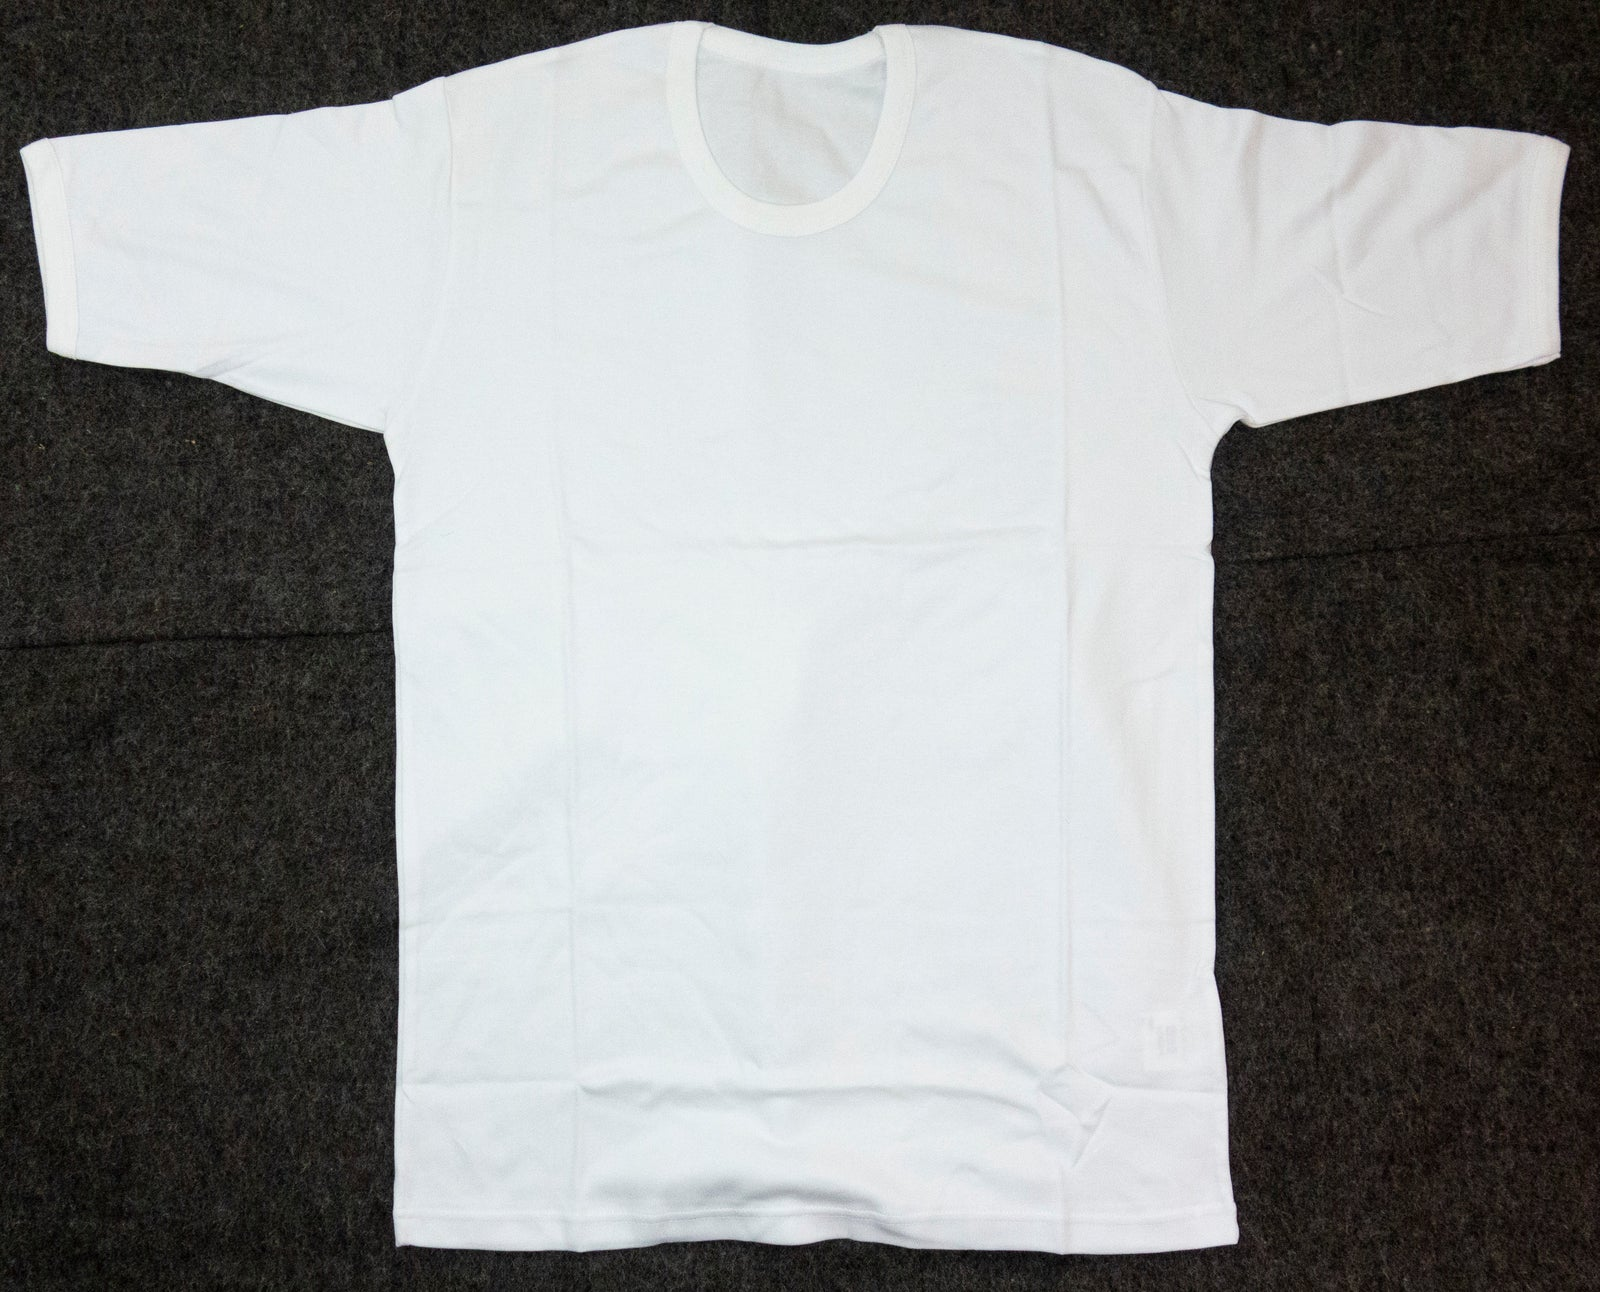 2 x British Army Surplus White T-Shirt Cotton